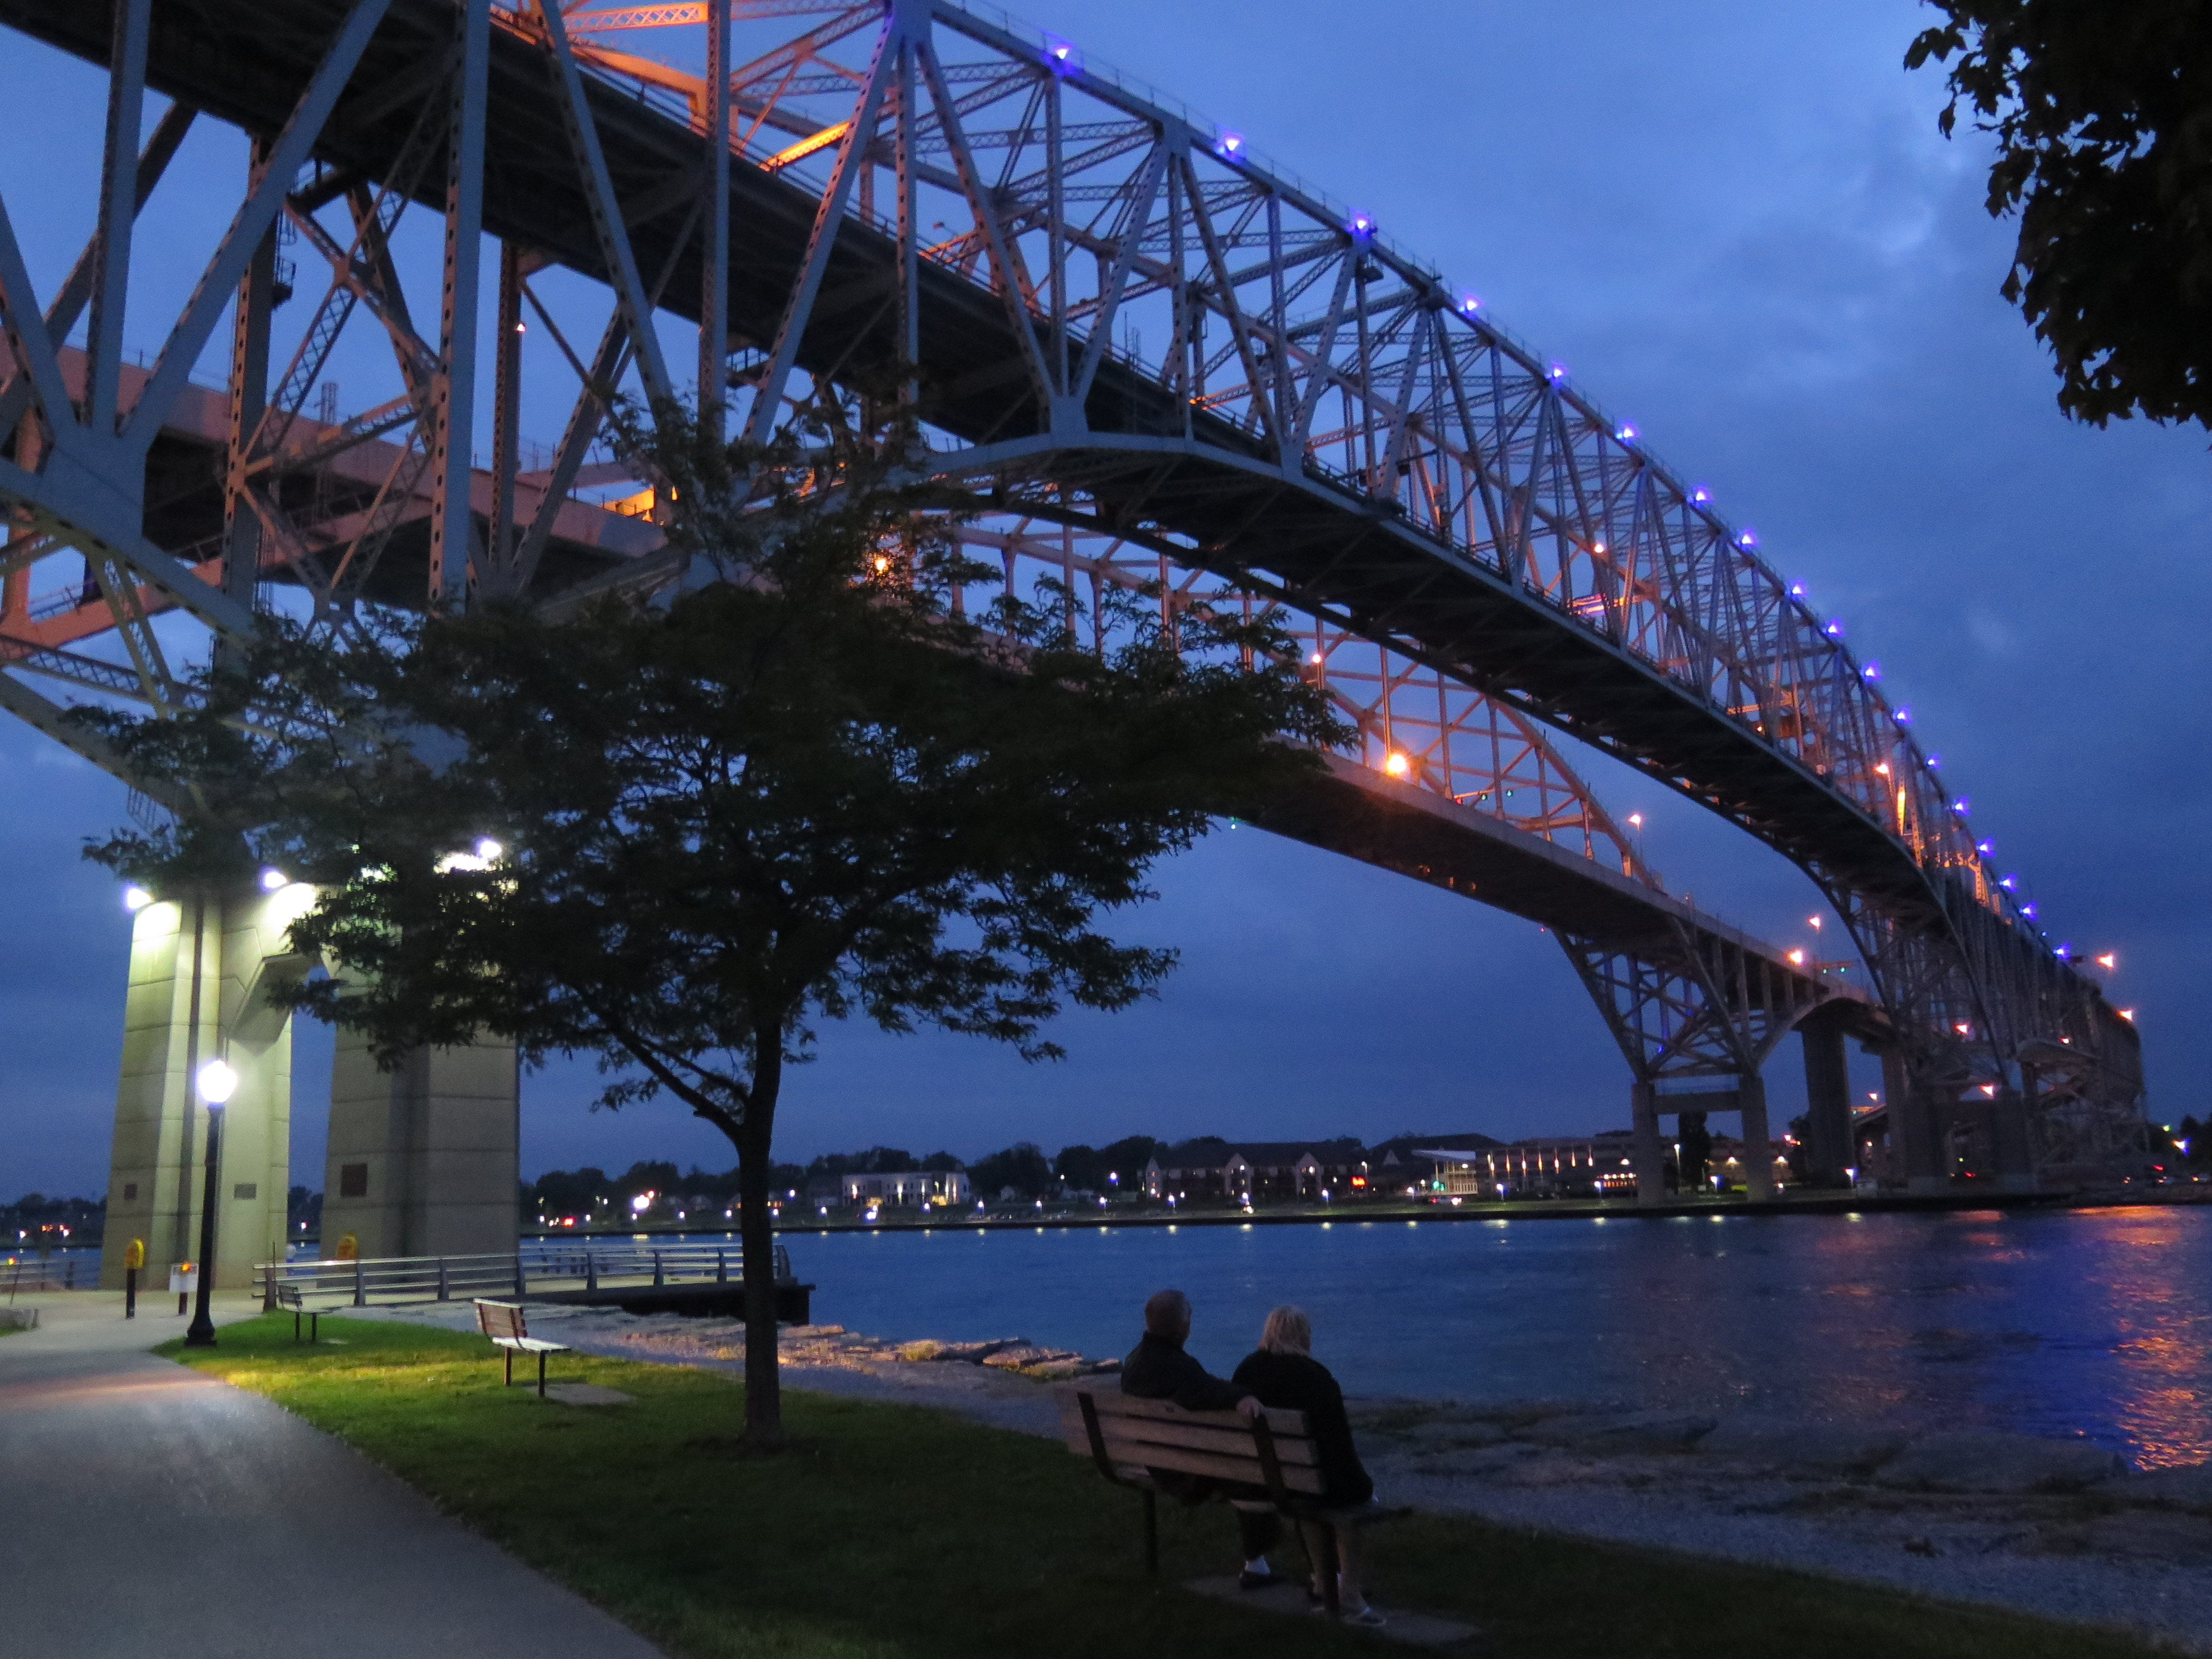 The Blue Water Bridge is a beauty, especially at dusk. JIM BYERS PHOTO